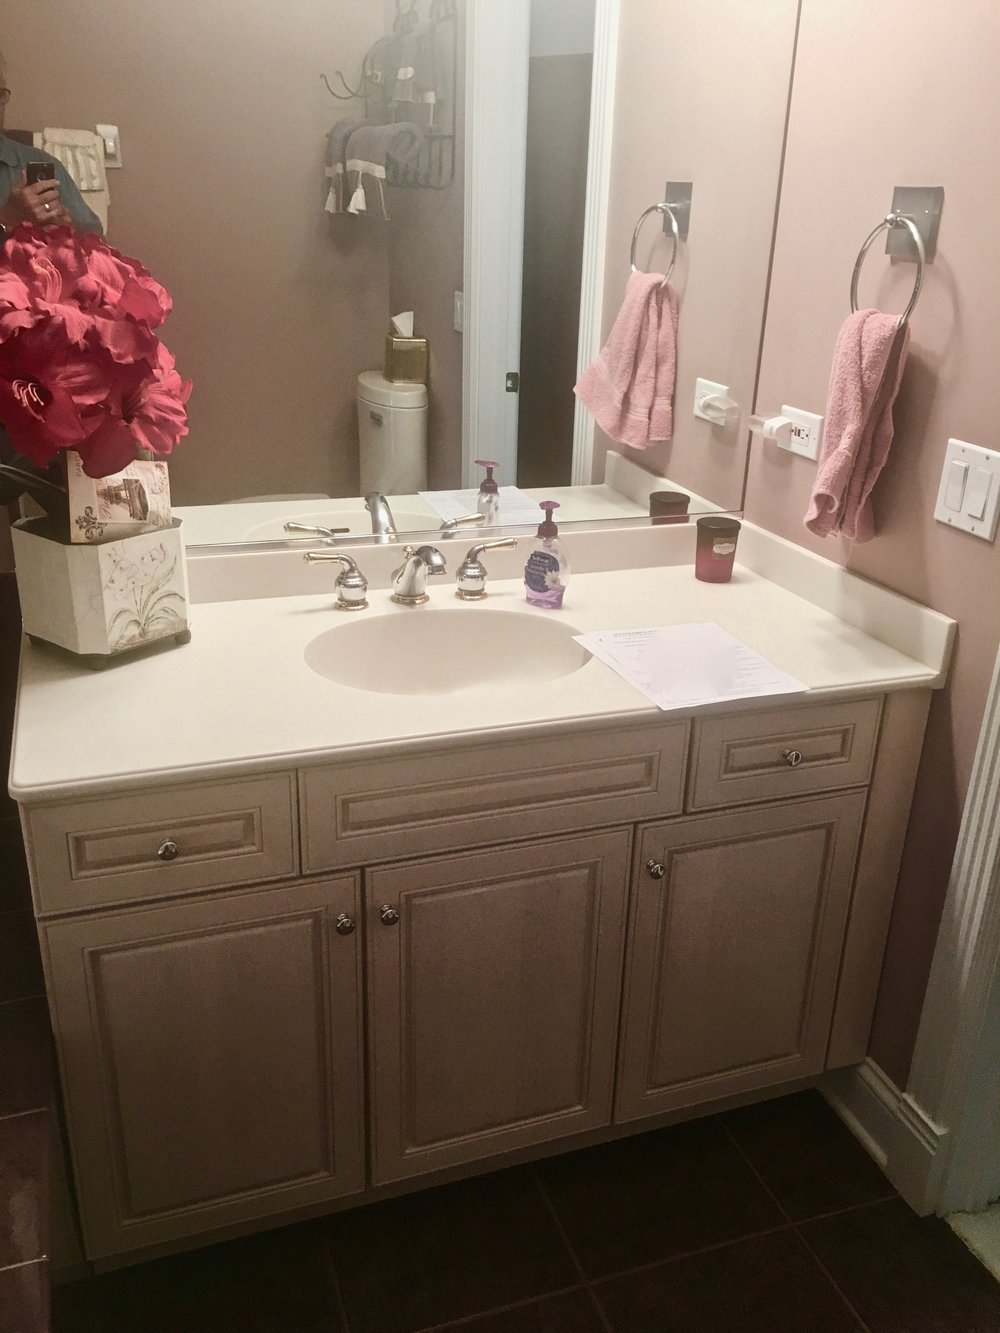 St. Charles IL Bathroom Vanity Replacement Specialist- BEFORE.jpg